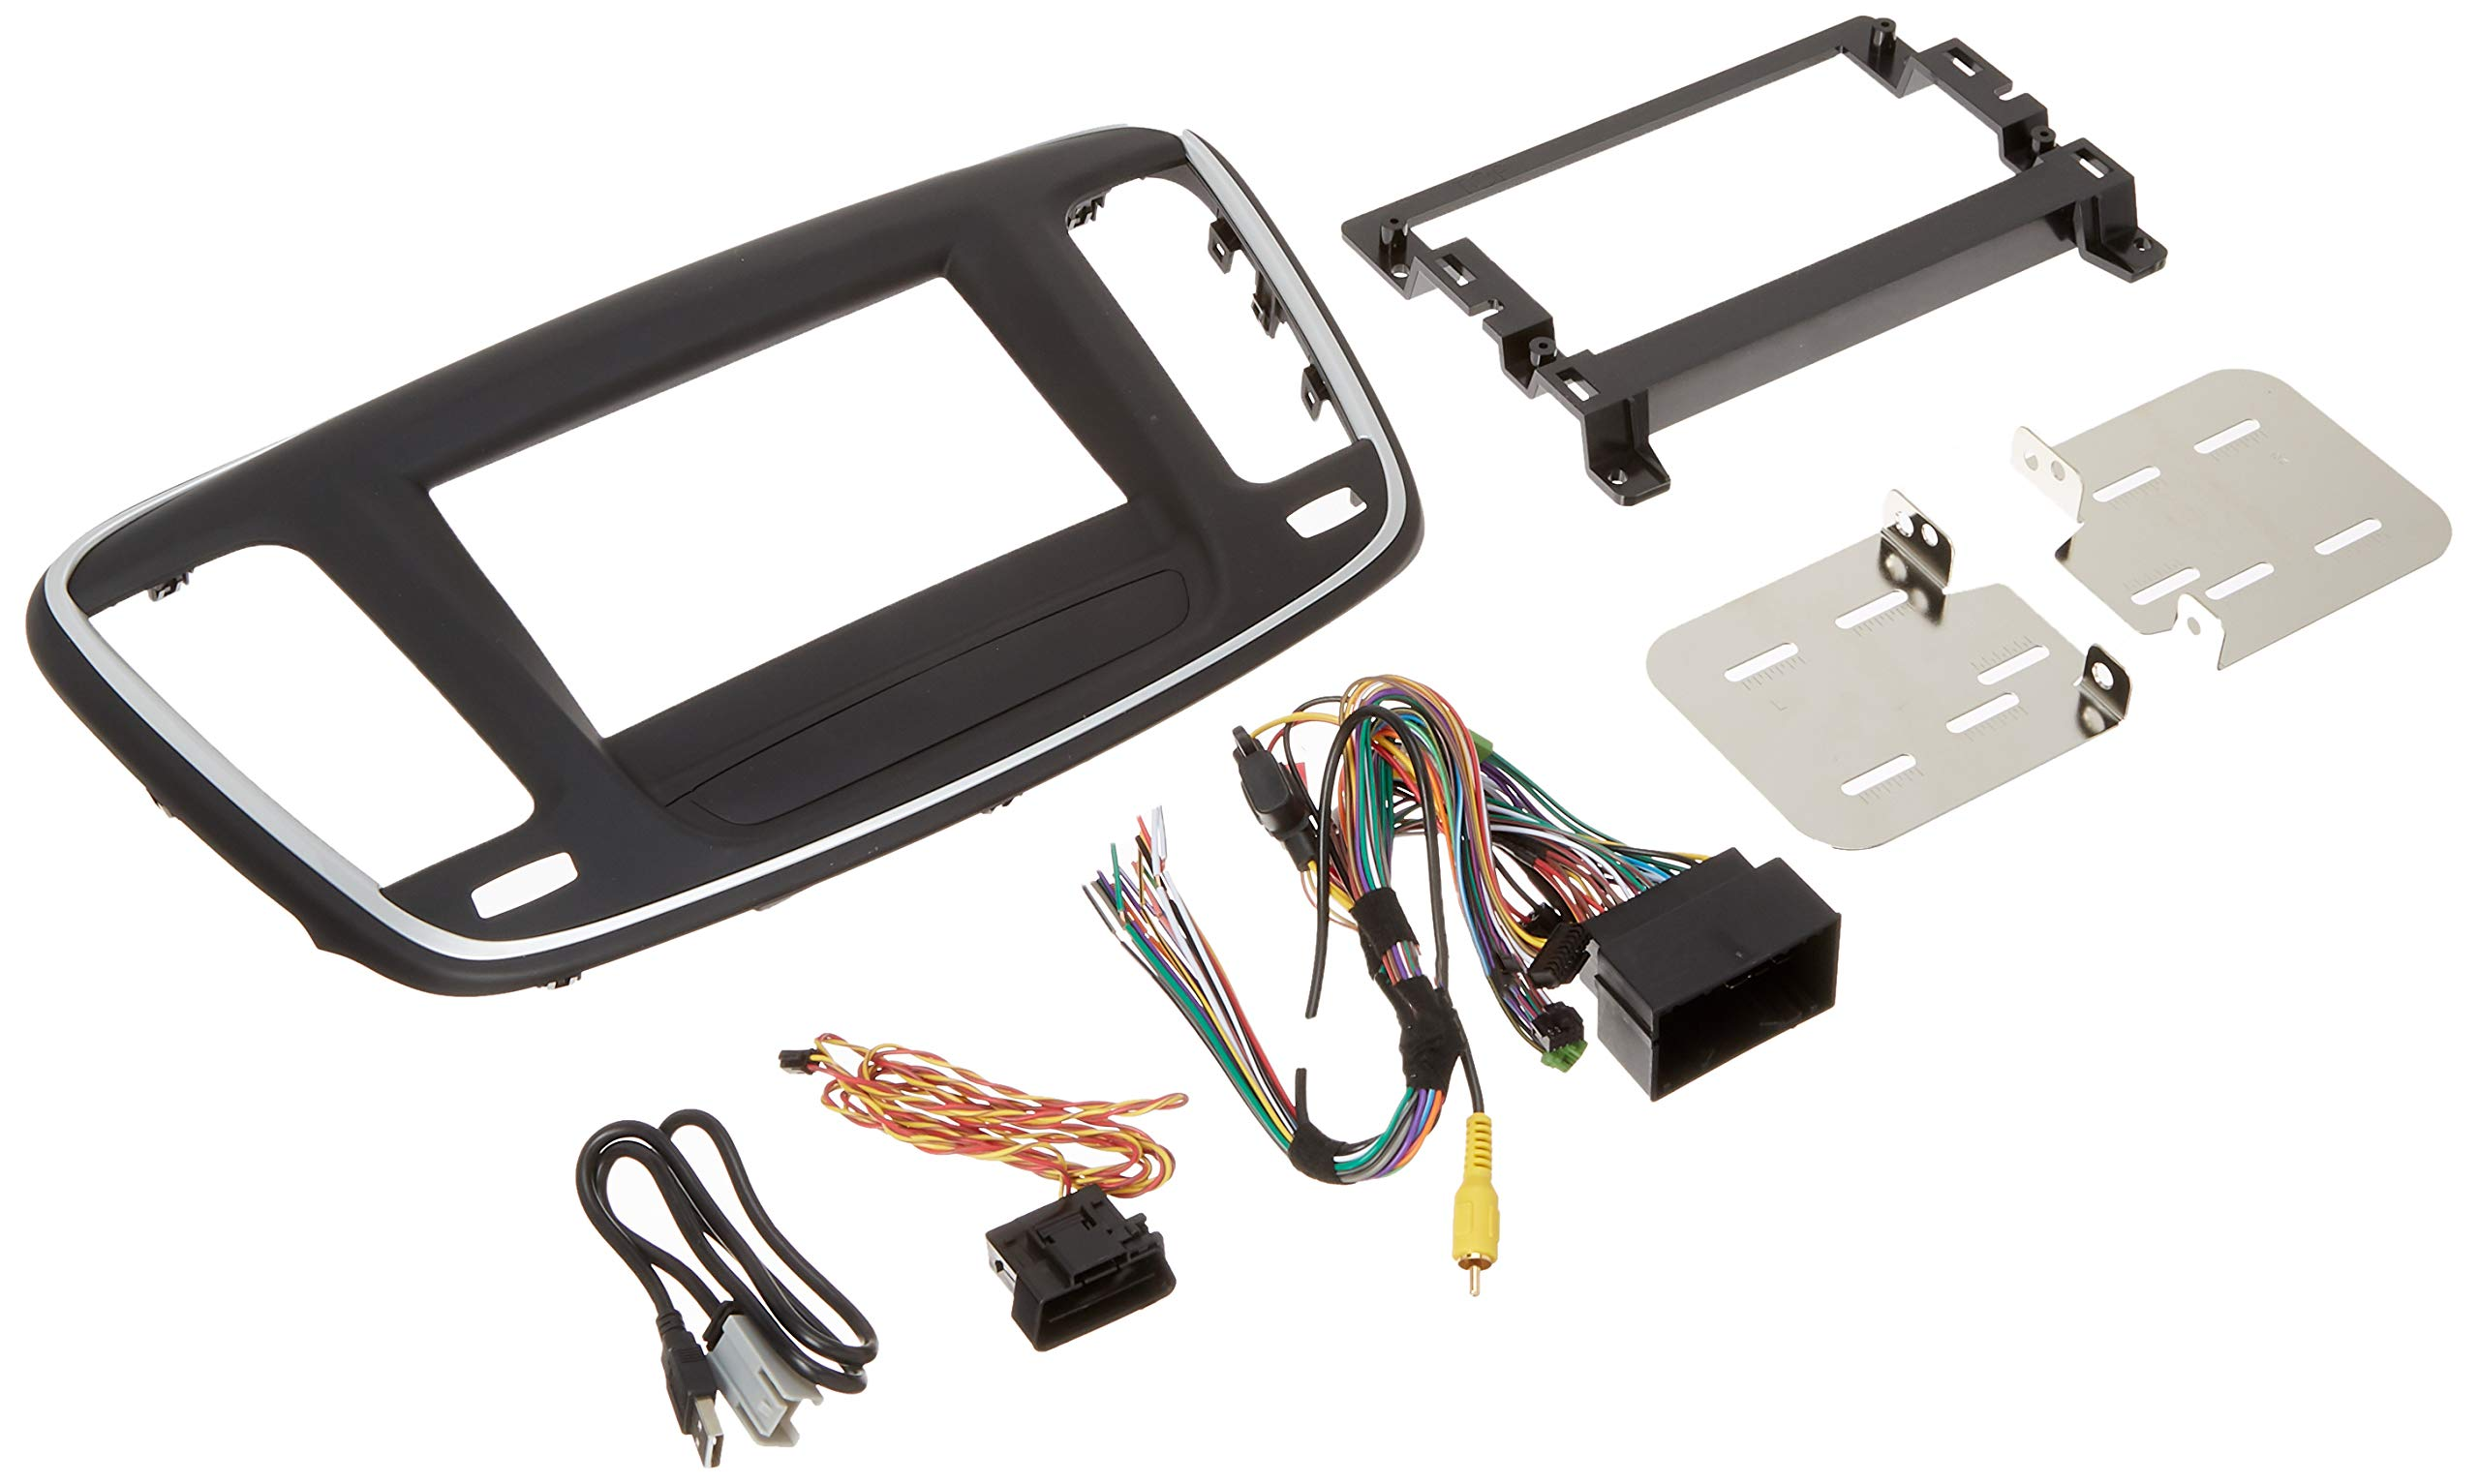 Maestro KIT-C200 Dash Kit, USB Adaptor and T-Harness for 2015 and up Chrysler 200 by Maestro